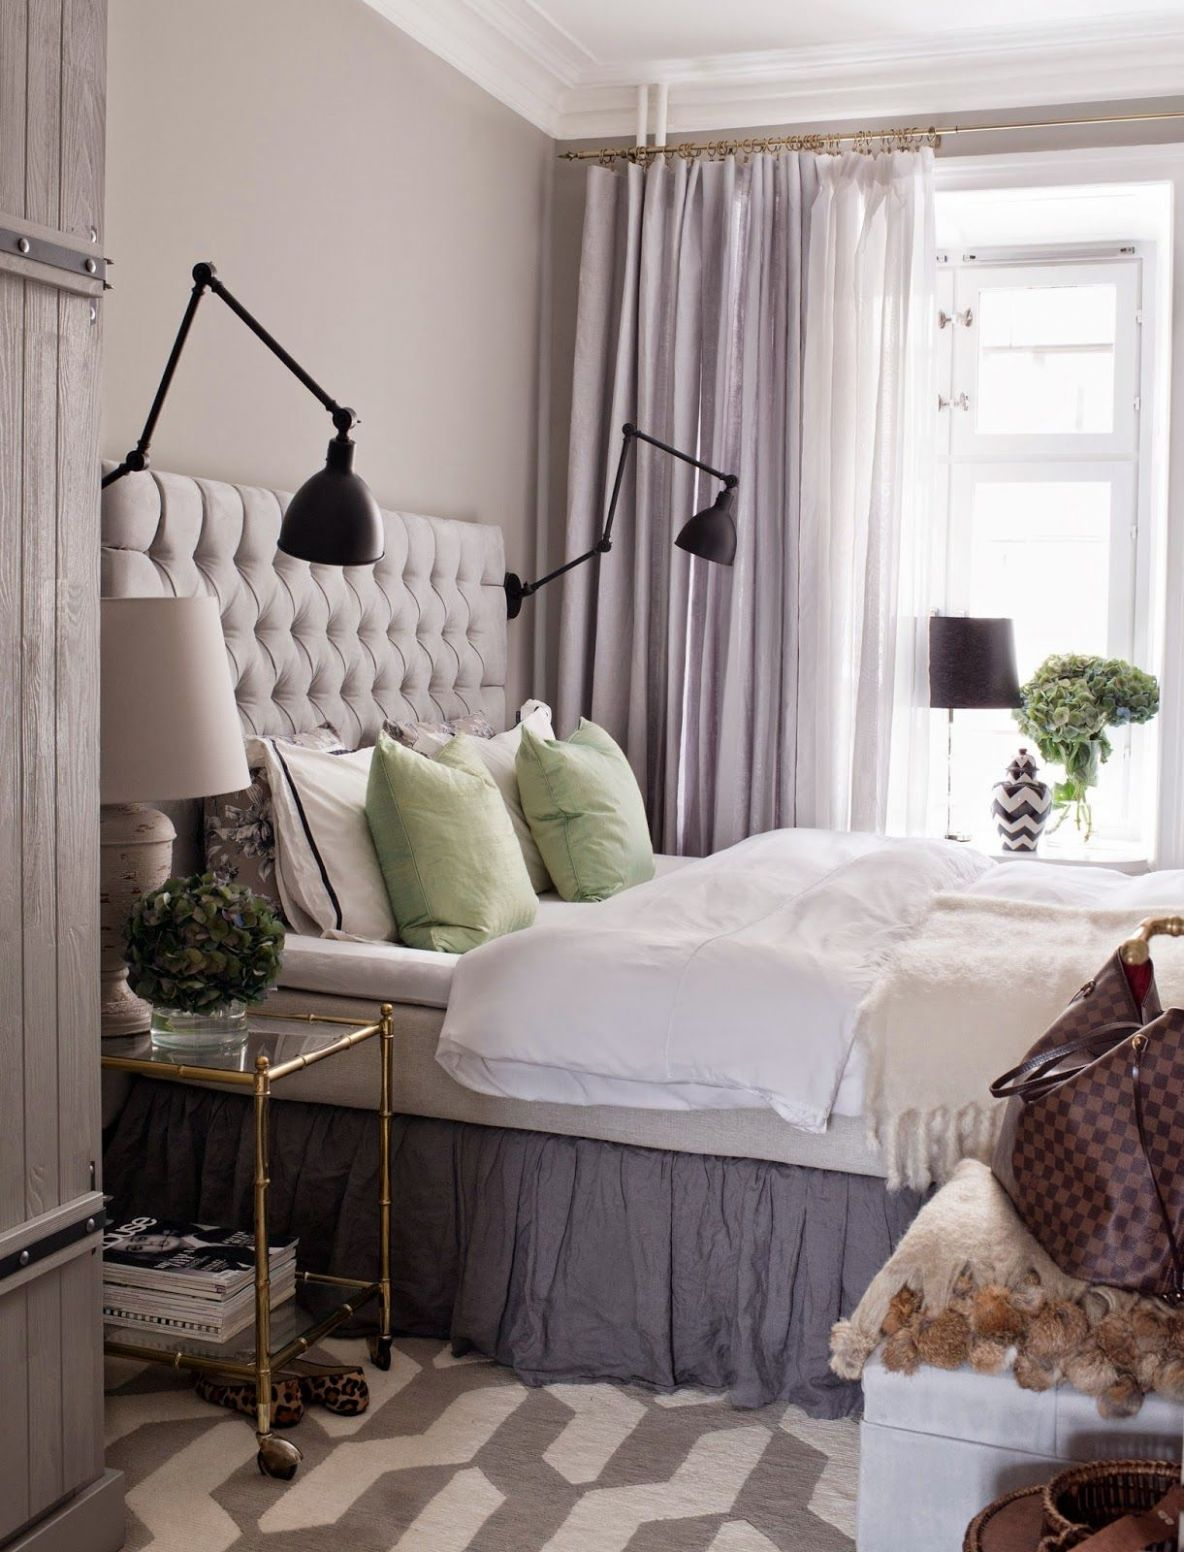 A Lovely Home | Inredning - bedroom ideas next